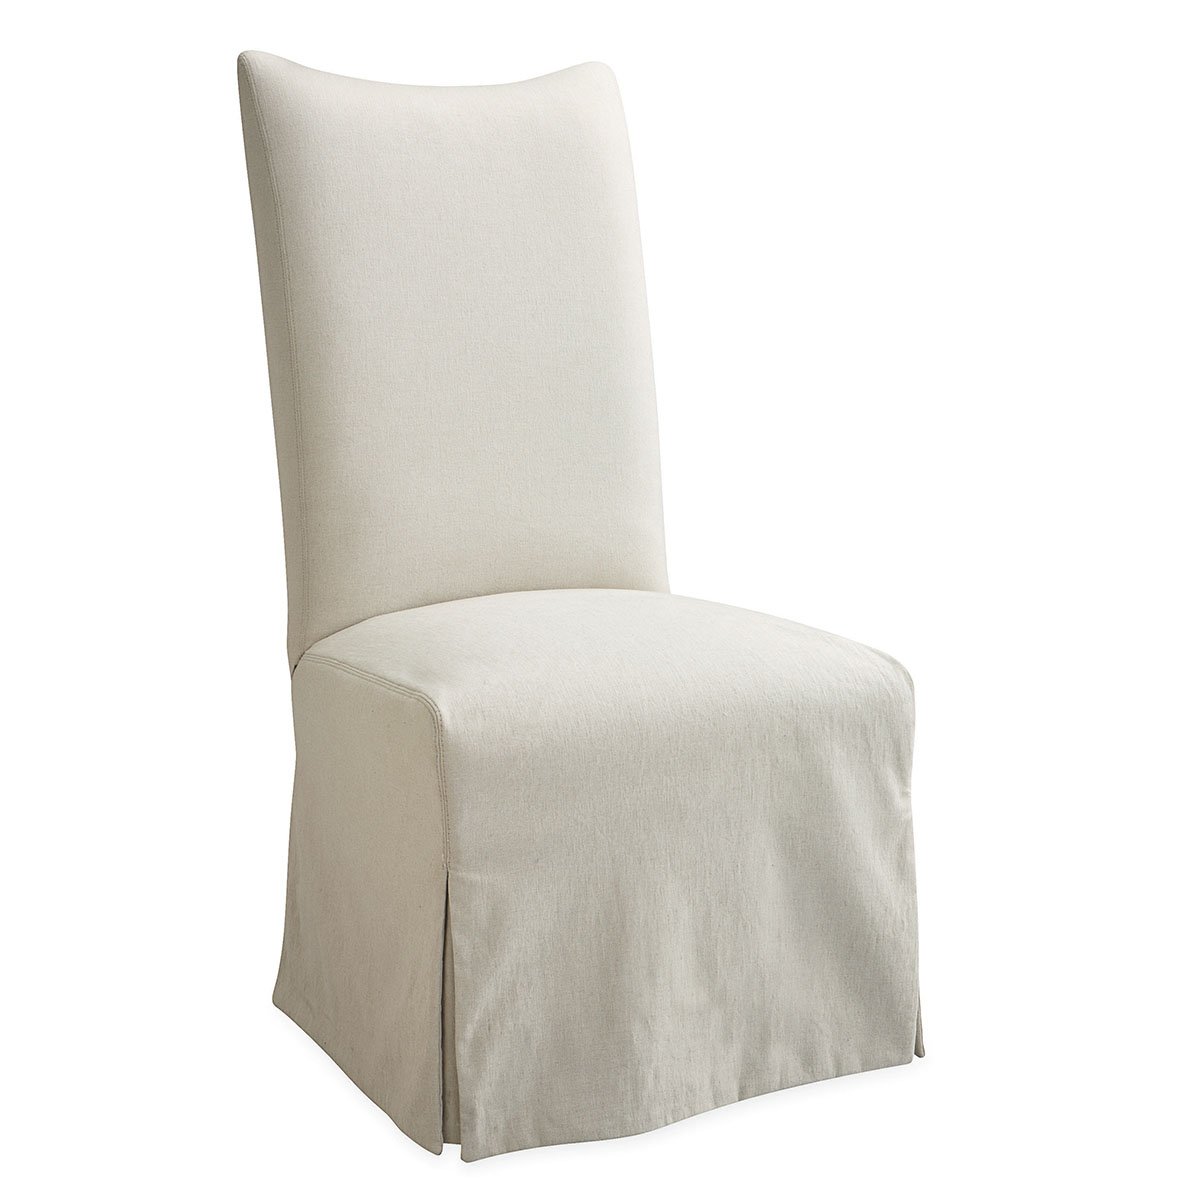 Slipcovered_Dining_Side_Chair_C7750-01_Lee_Industries.jpg